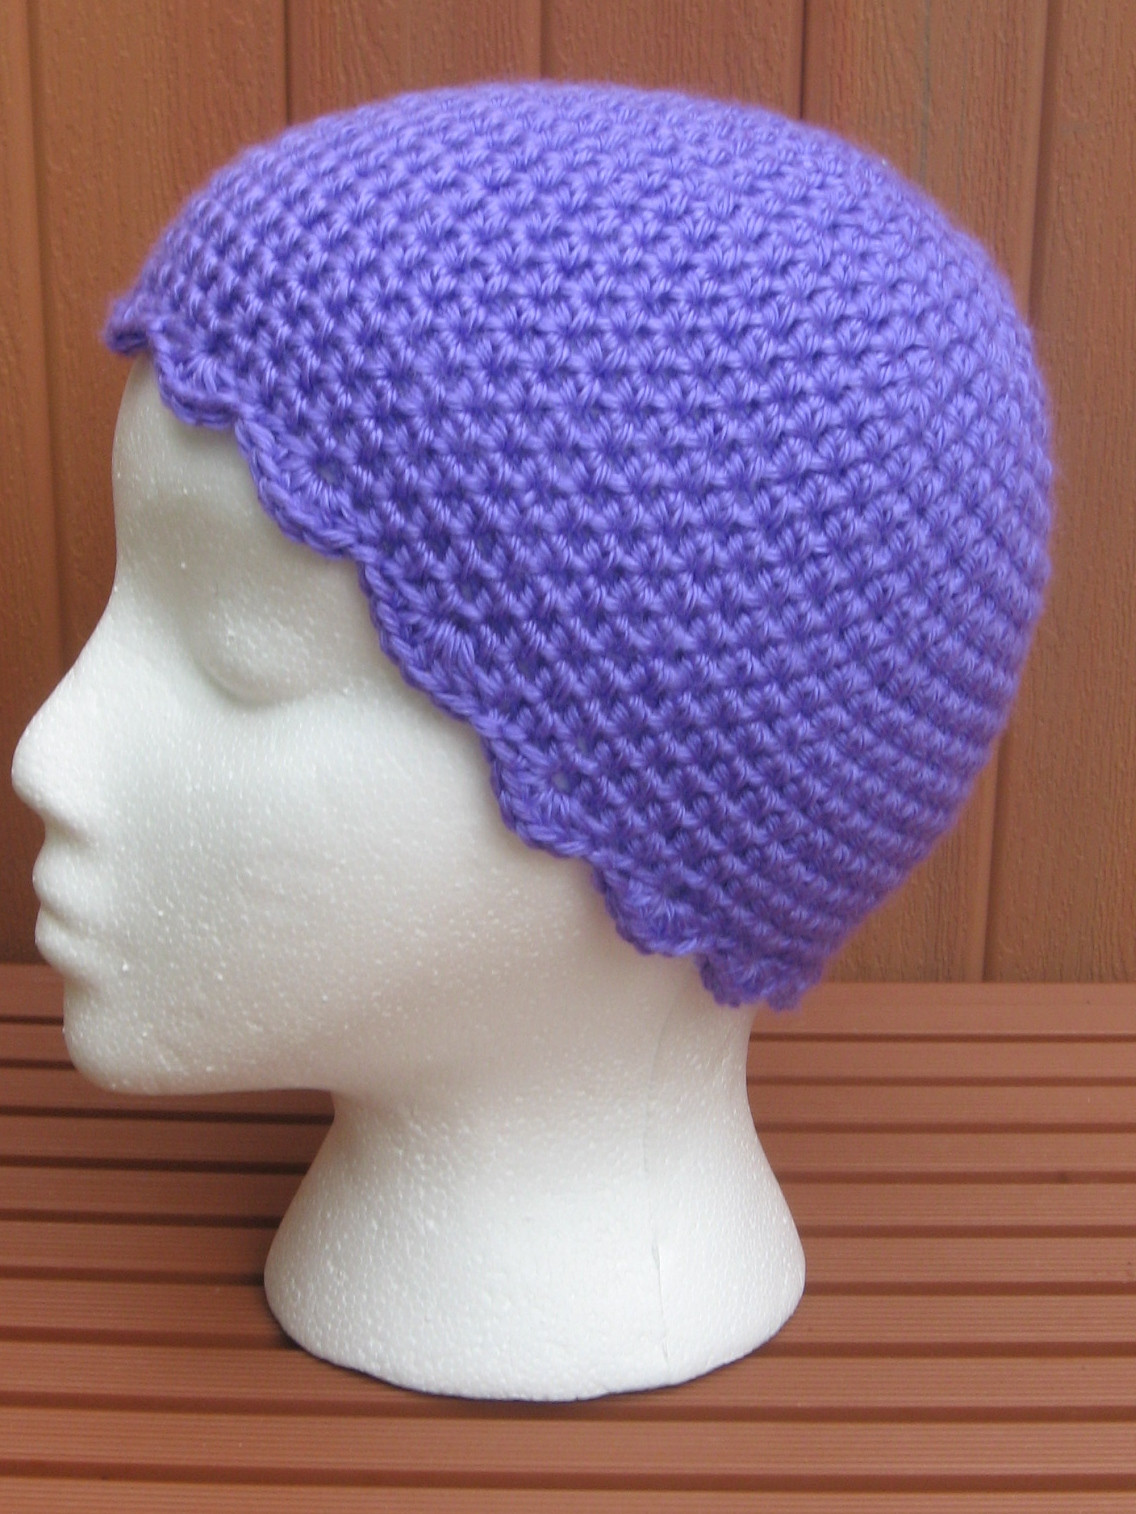 Chemo Cap Pattern Luxury Crochet Projects Crochet Chemo Sleep Cap Of Adorable 45 Models Chemo Cap Pattern